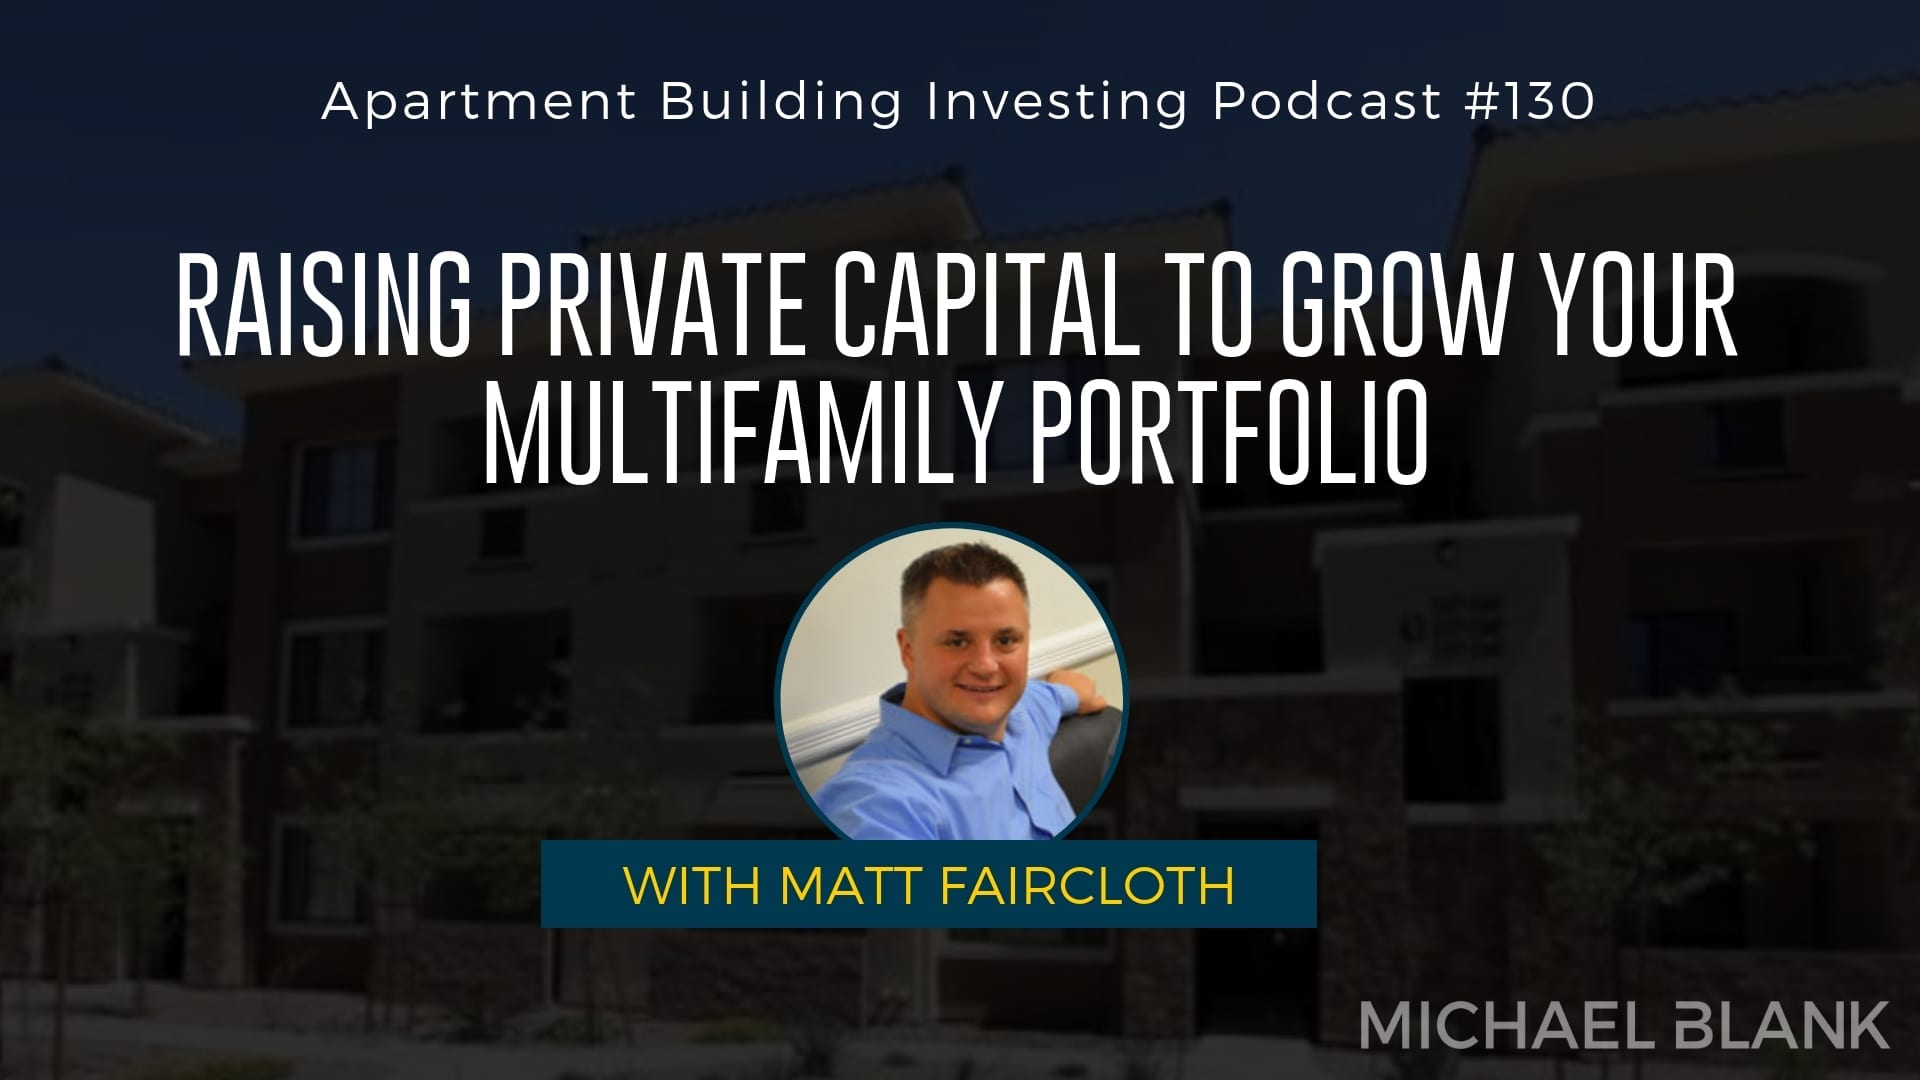 MB 130: Raising Private Capital to Grow Your Multifamily Portfolio – With Matt Faircloth